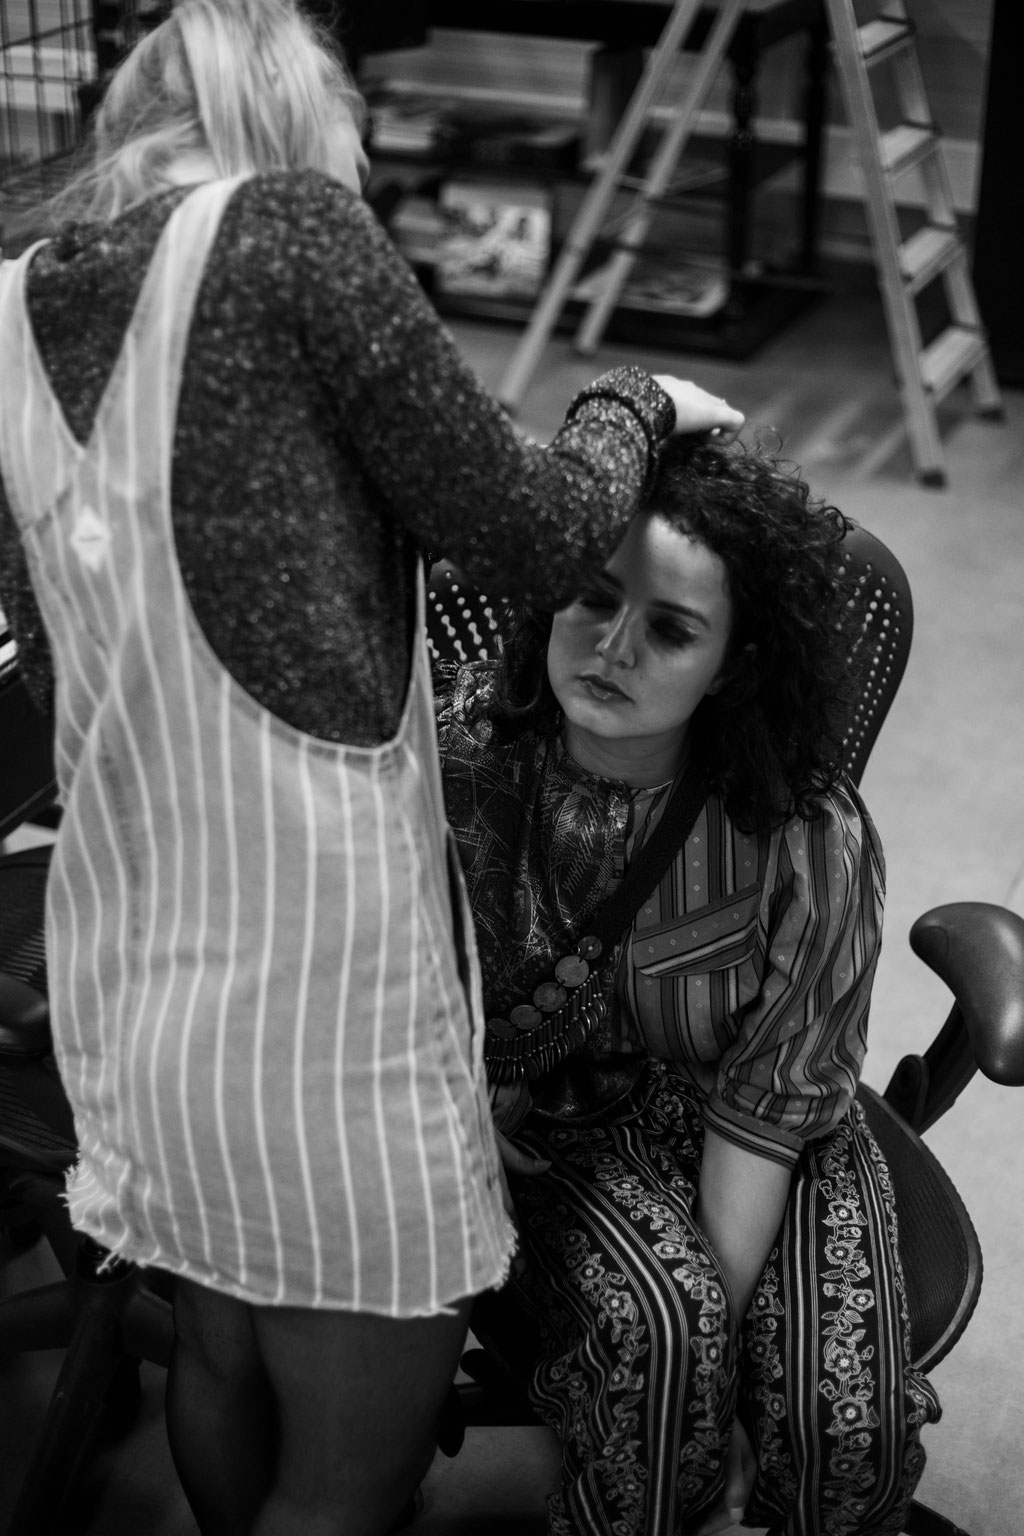 Rotterdam based recording & performing artist Roufaida and make-up artist Maud Zoutenbier - backstage - photographed by Landa Penders